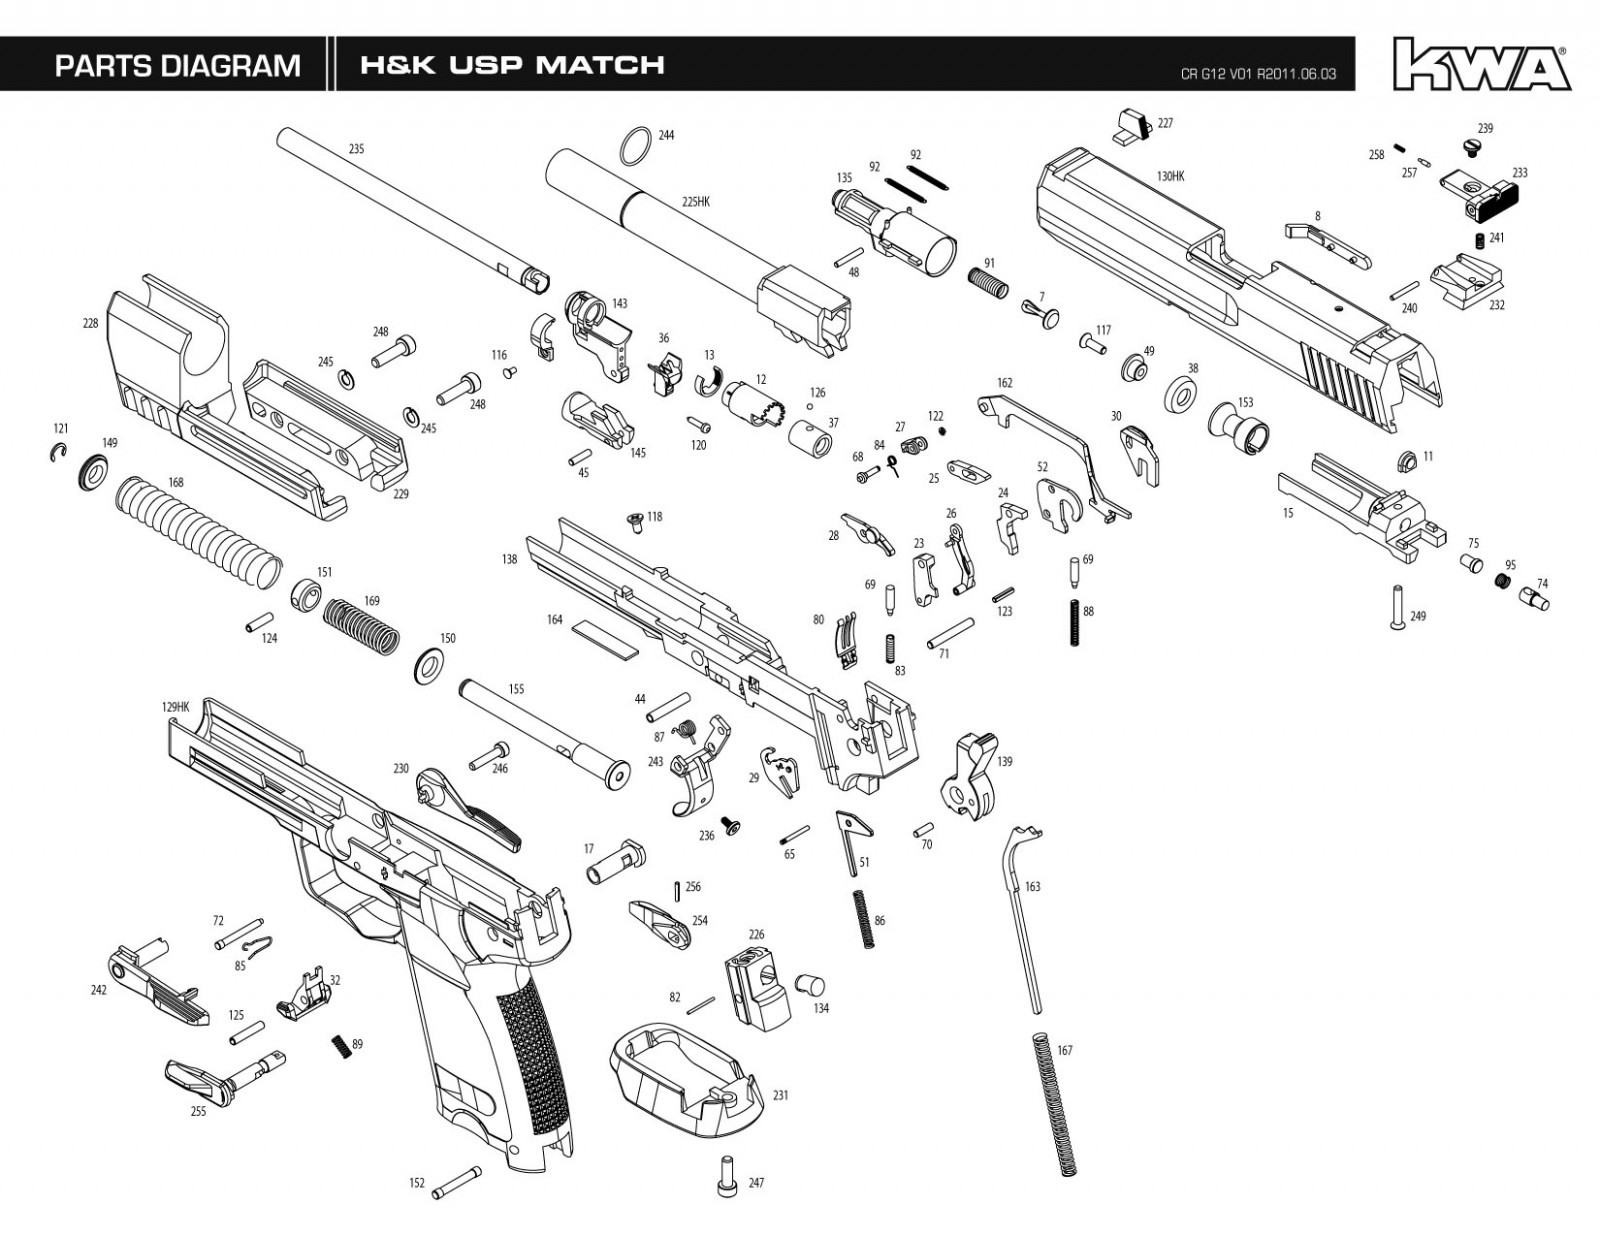 Kwa Umarex Usp Match Exploded Diagram Ksc Part